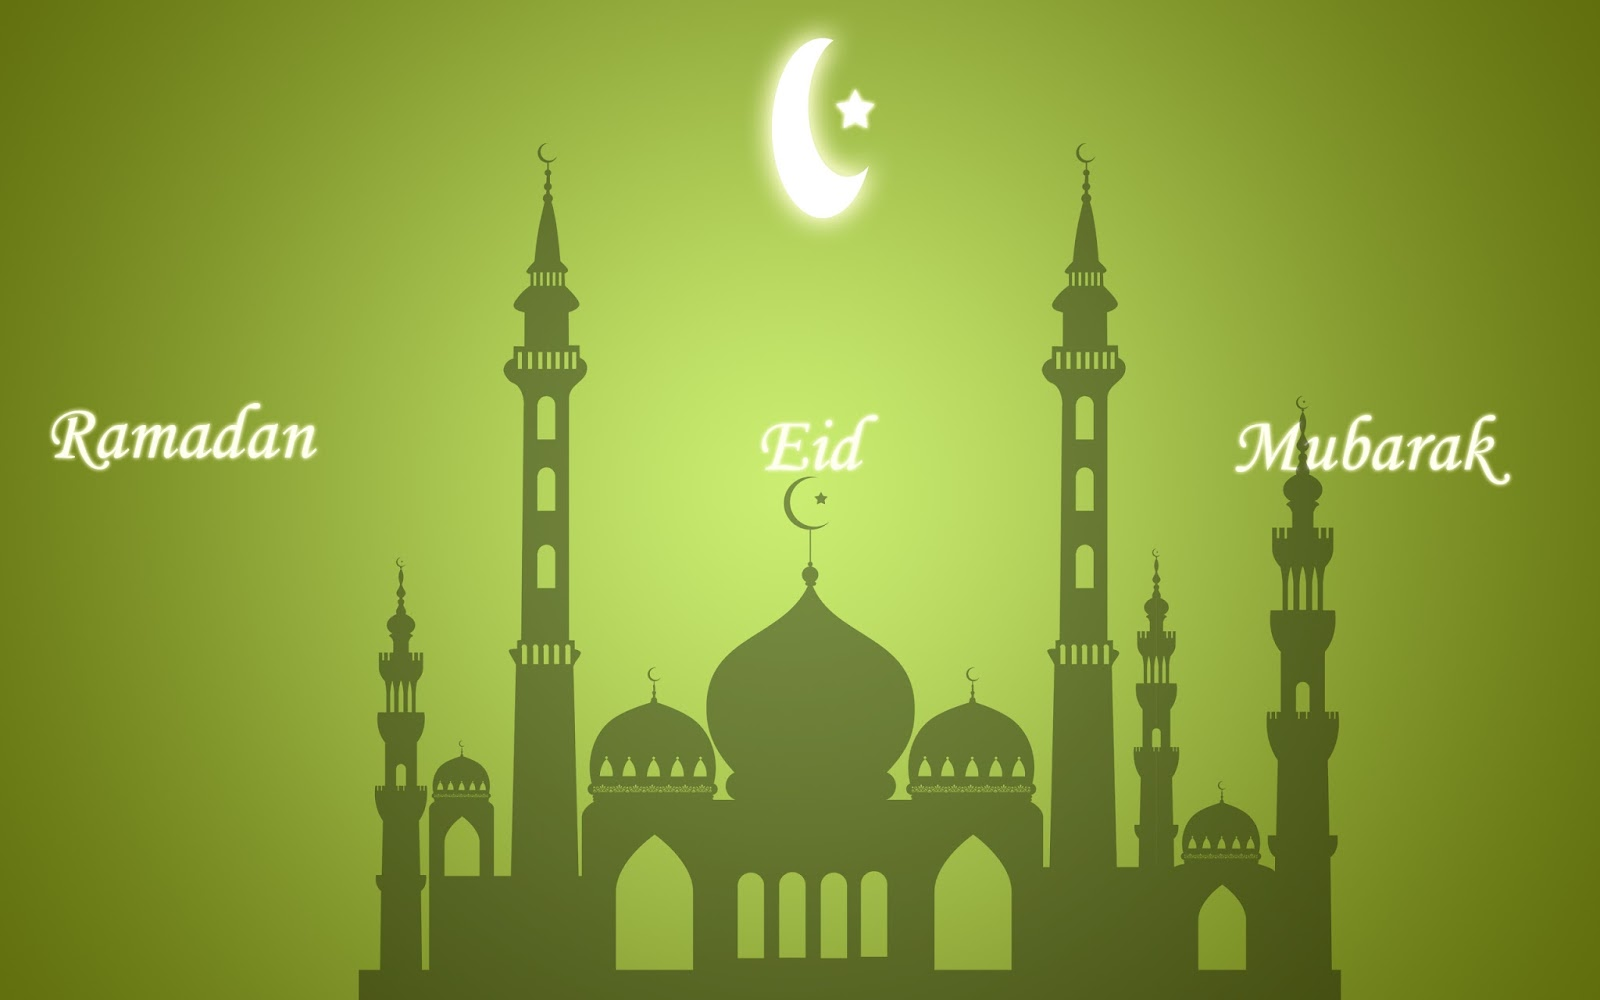 Eid mubarak 2016 wishes images sms and greeting cards eid eid mubarak images with quotes kristyandbryce Images